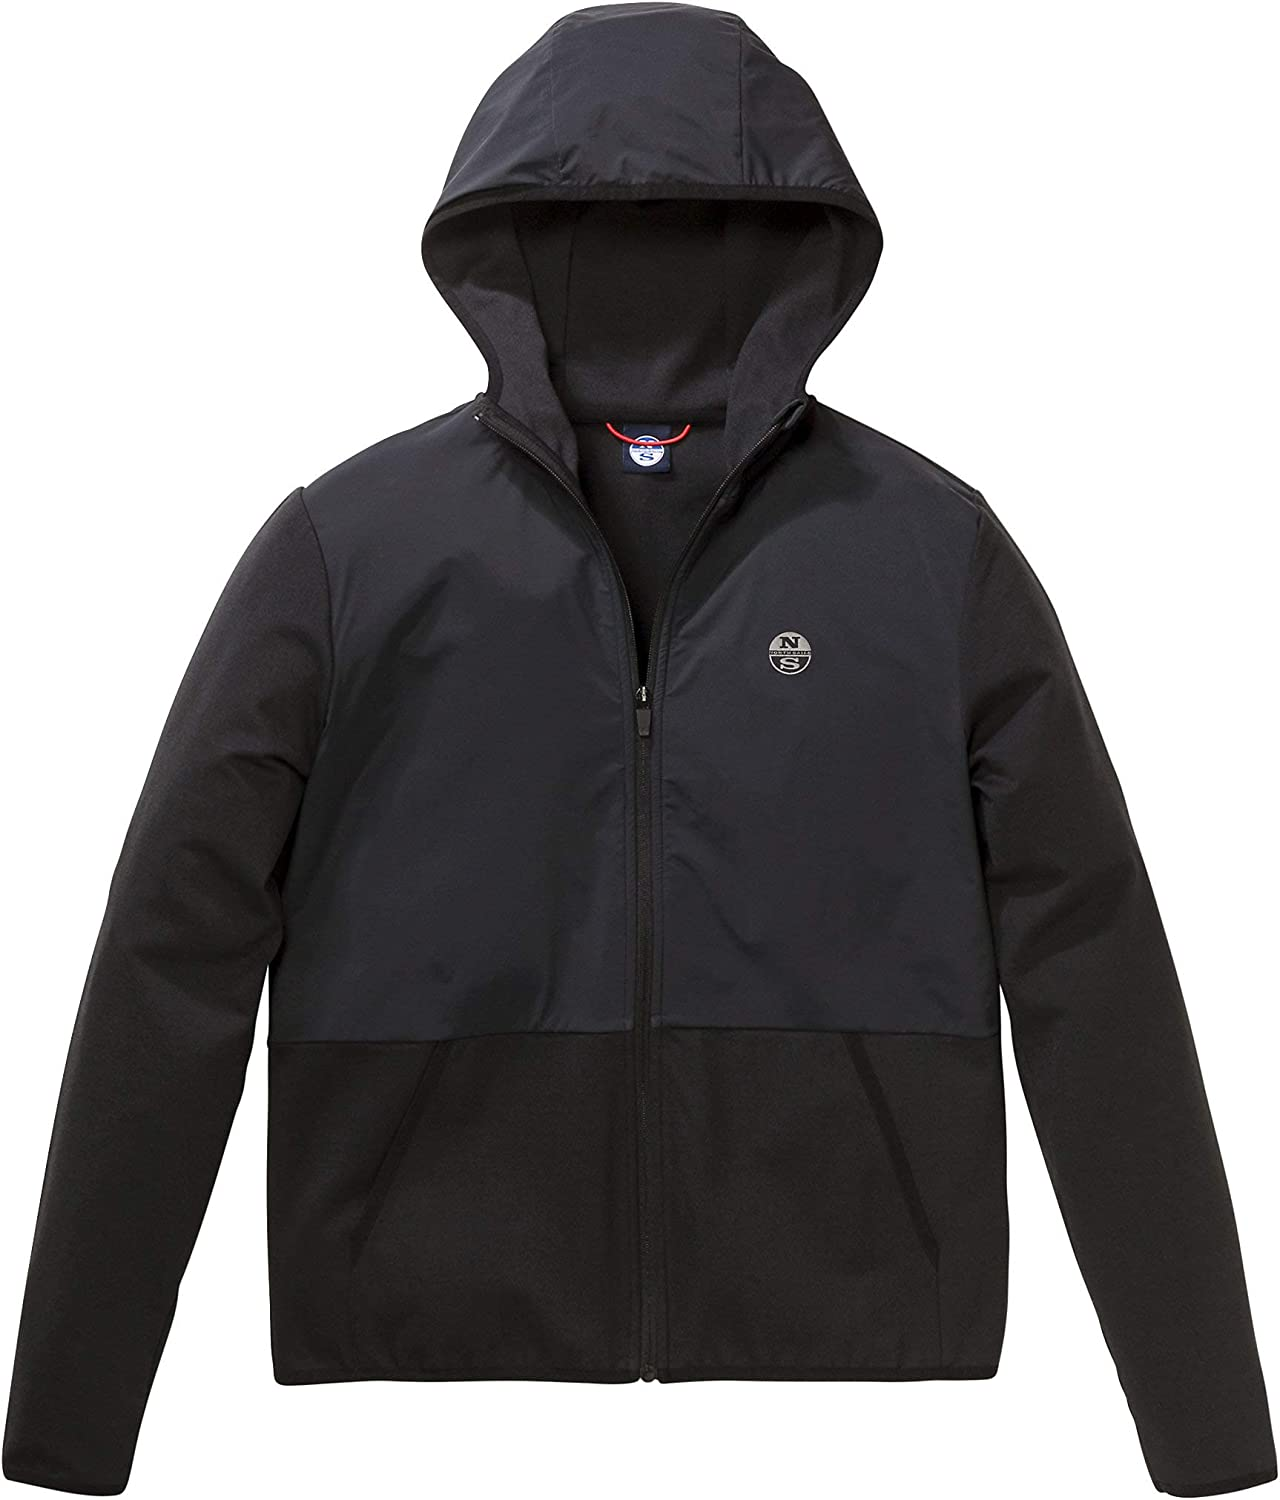 North Sails Men's Full Zip Hoodie with 2 Angle Front Pockets